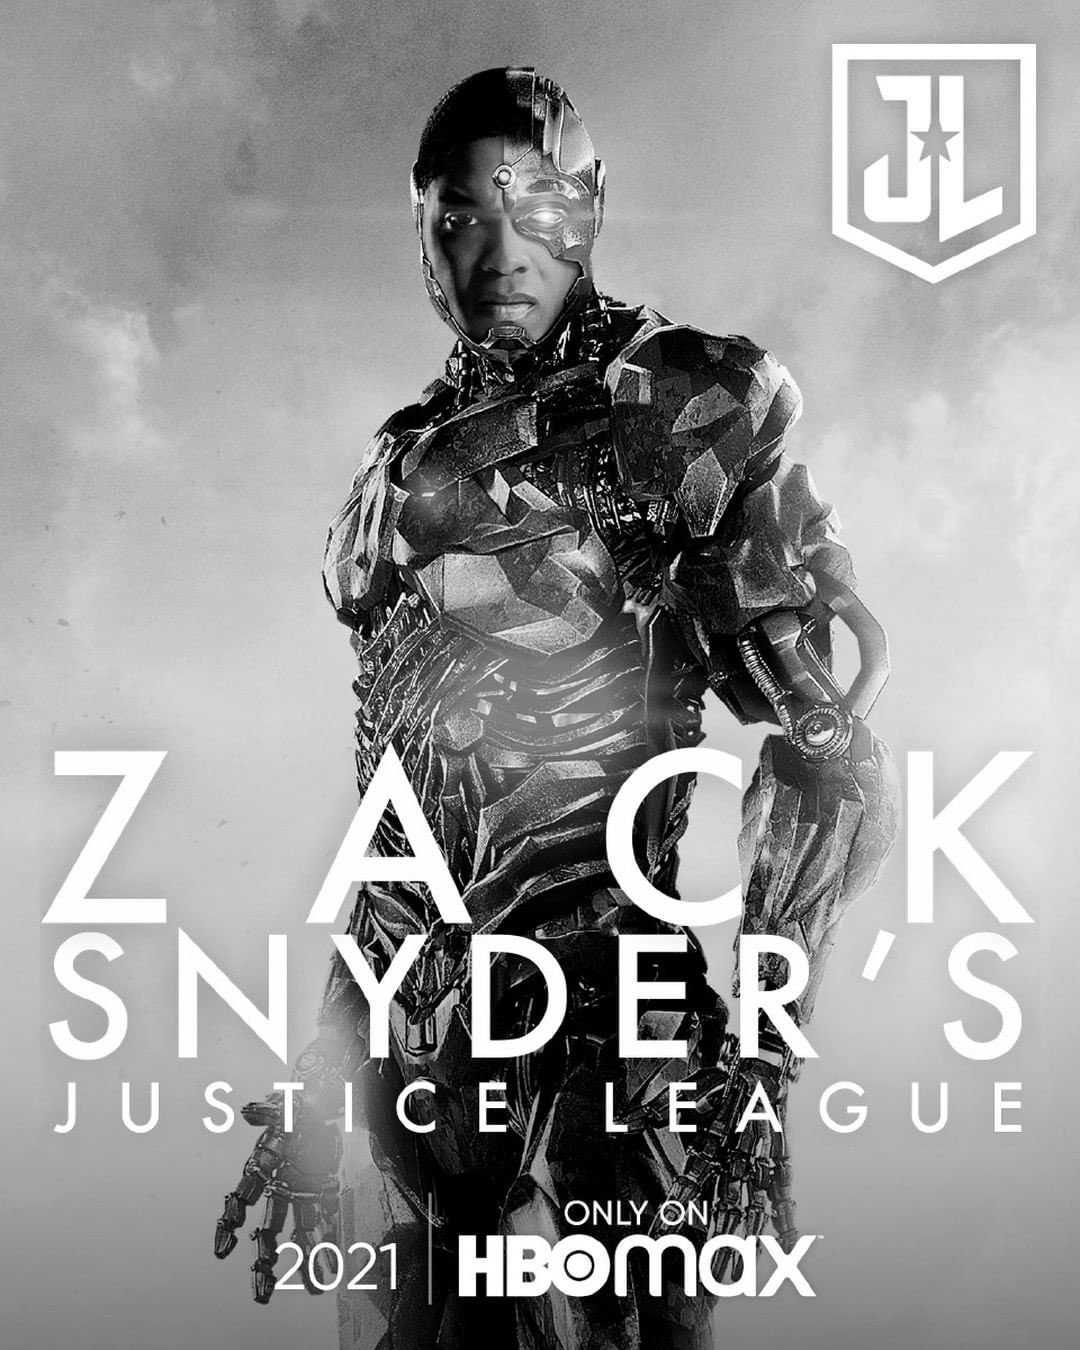 Zack Snyder's Justice League Poster - луч, рэй Fisher as Cyborg